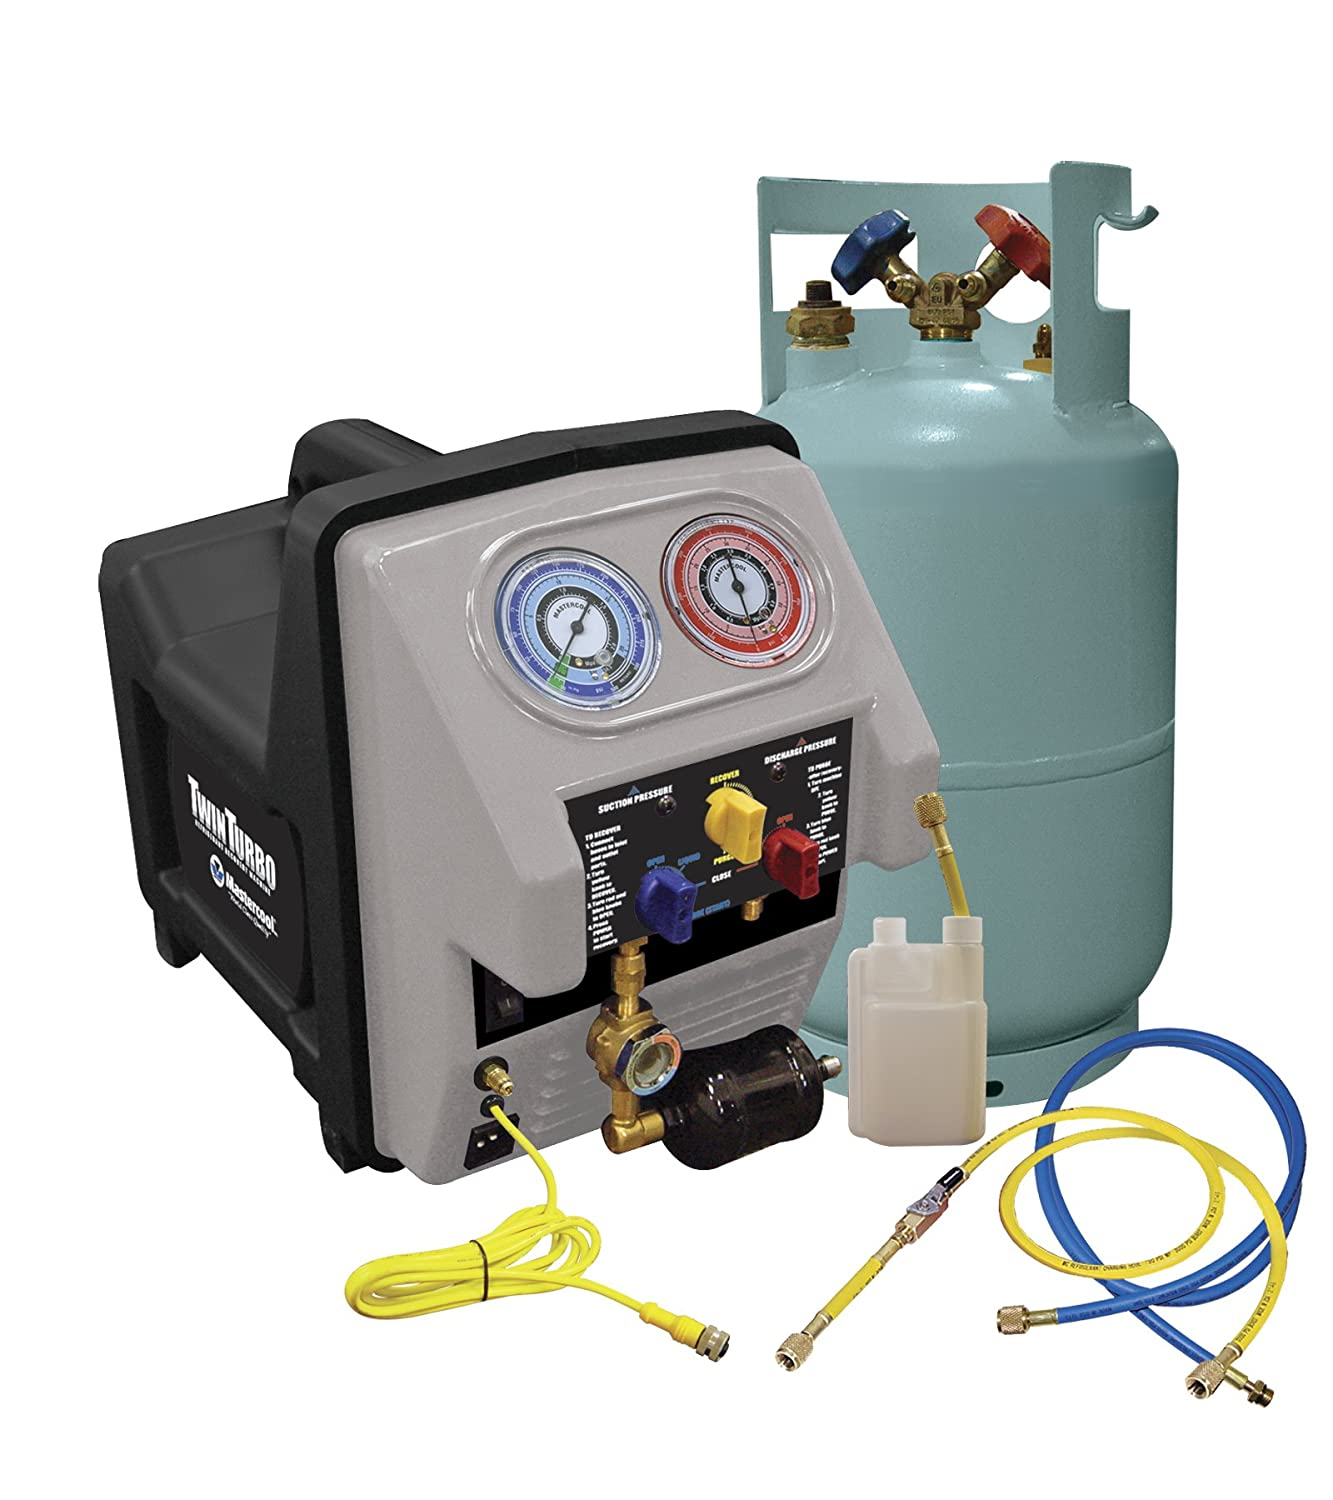 Mastercool (69360) Black/Gray Twin Turbo Complete Refrigerant Recovery System